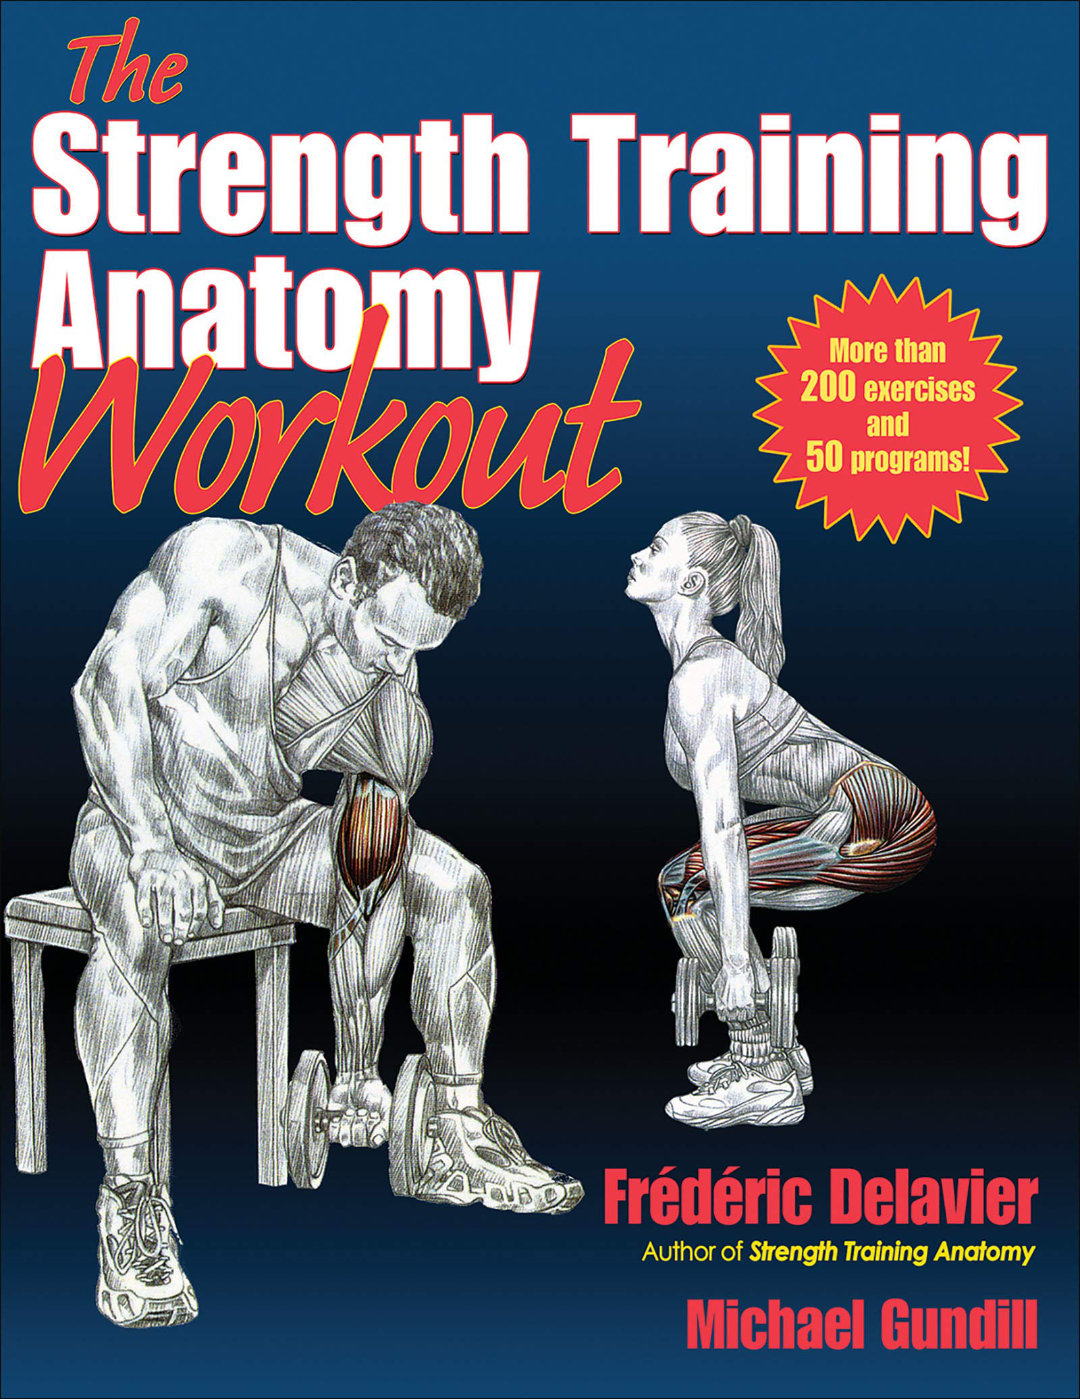 strength training anatomy workout book, frederic delavier